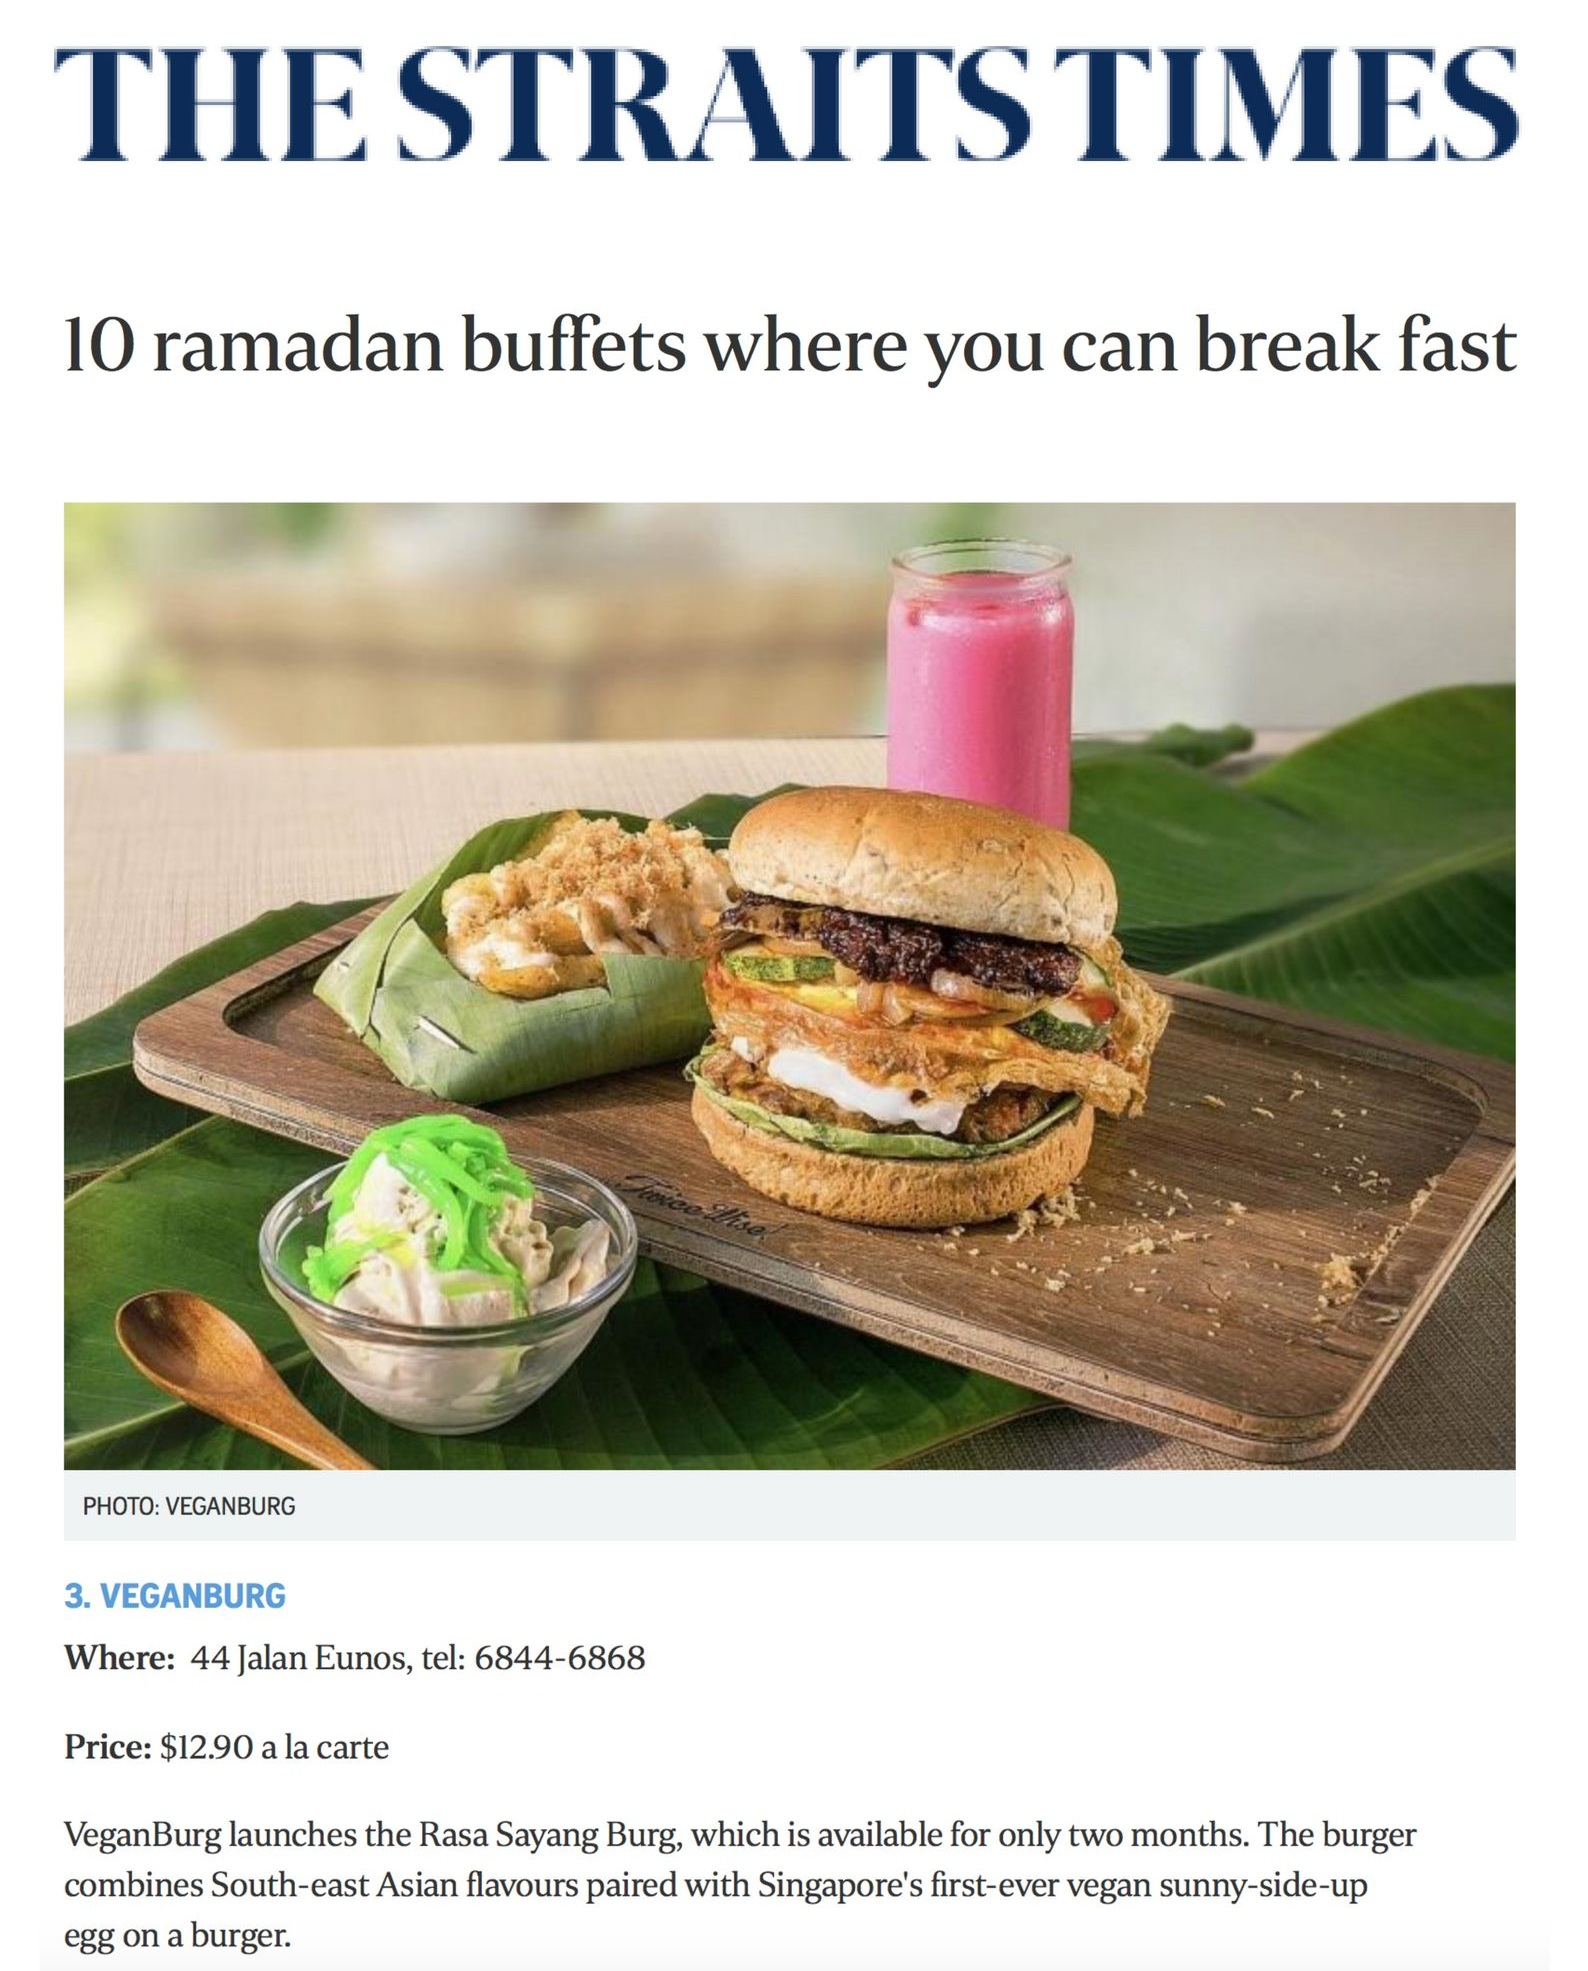 Straits+Times_+10+ramadan+buffets+where+you+can+break+fast.jpg